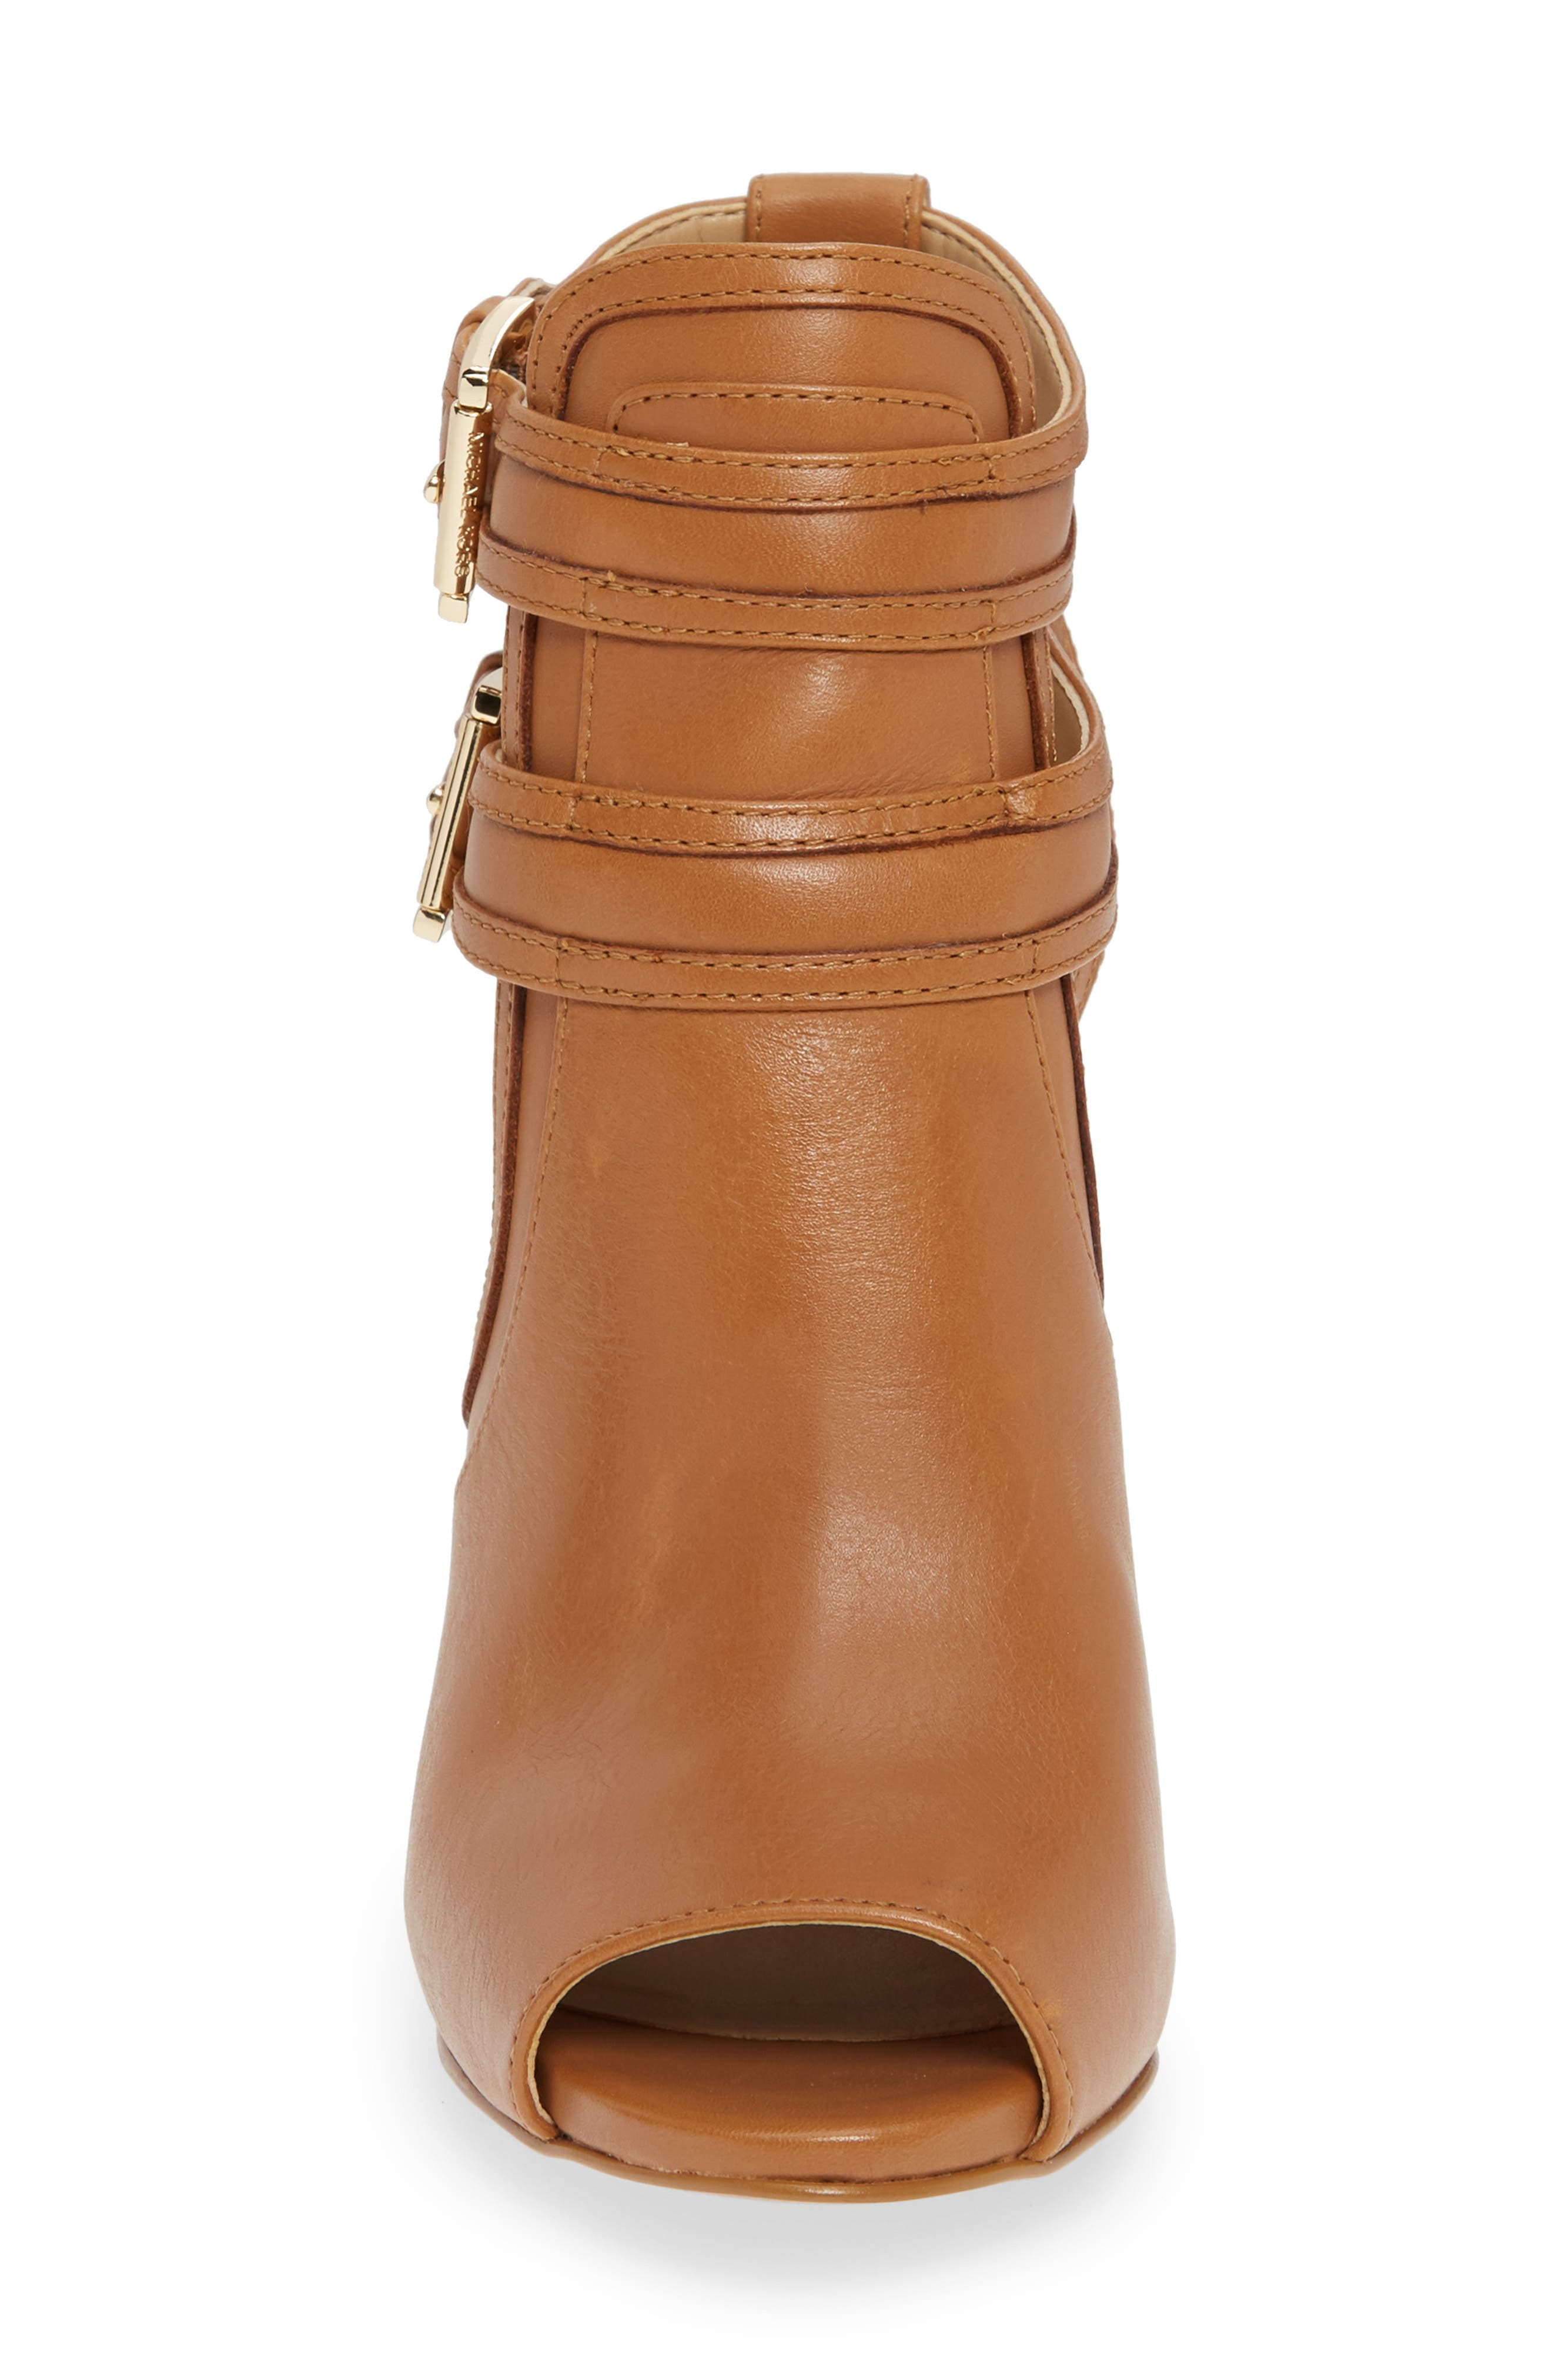 MICHAEL MICHAEL KORS, Blaze Peep Toe Buckle Bootie, Alternate thumbnail 4, color, ACORN LEATHER